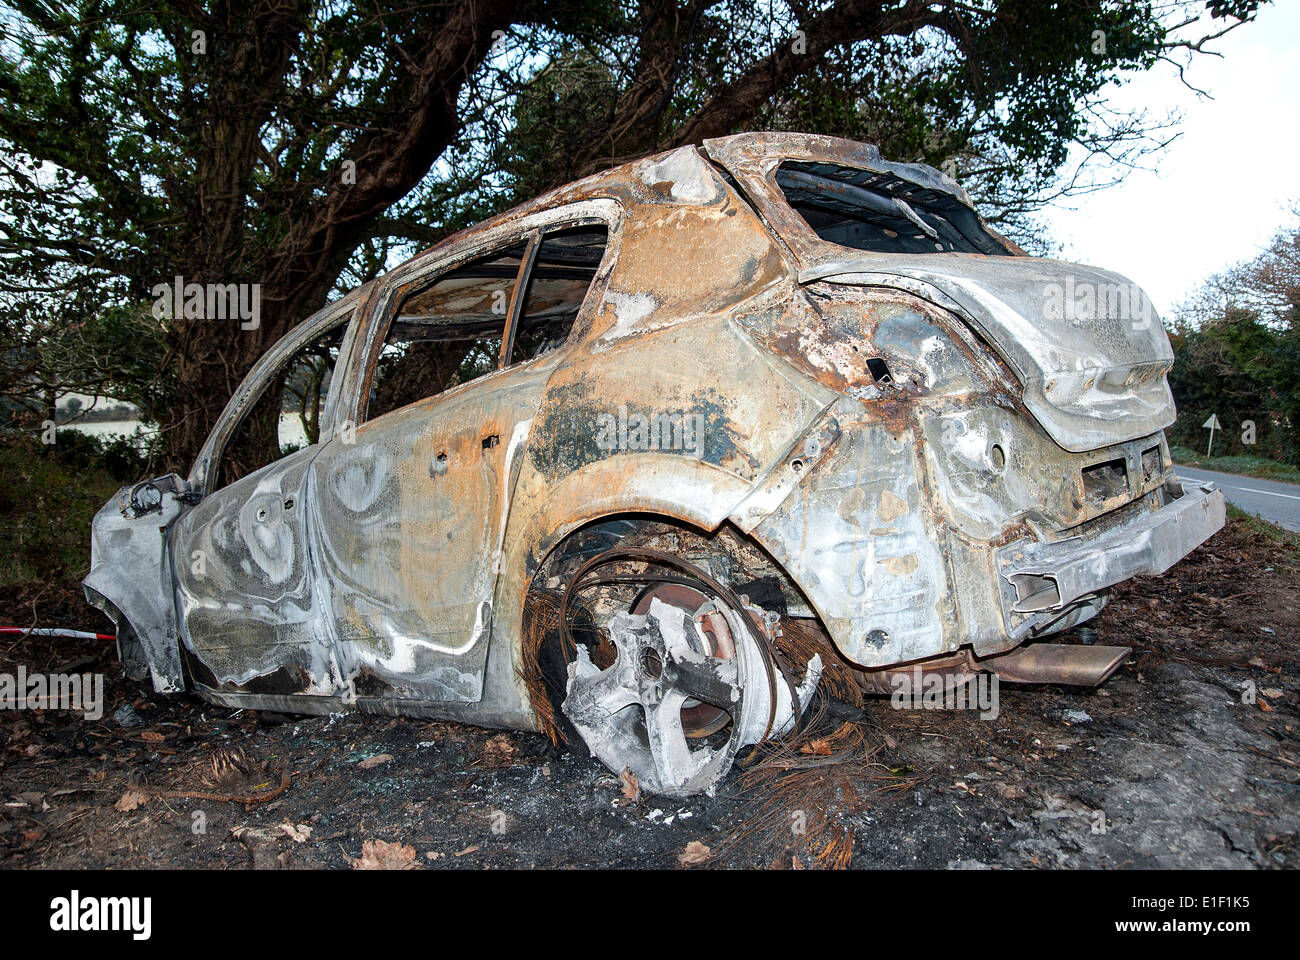 a crashed and burnt out car - Stock Image